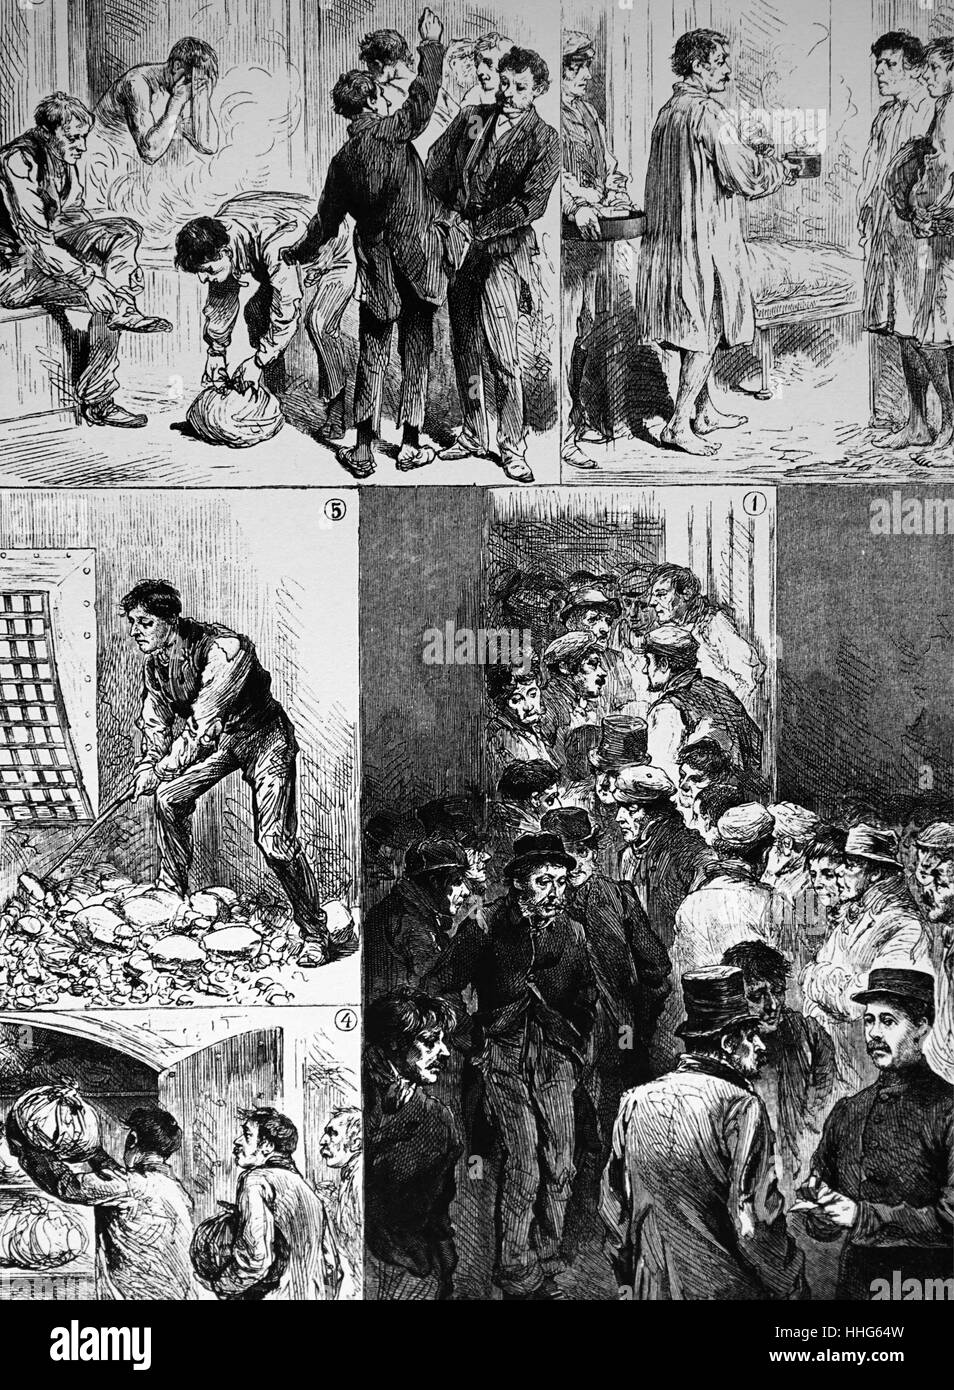 The 'Casual Ward' of a London workhouse - Stock Image